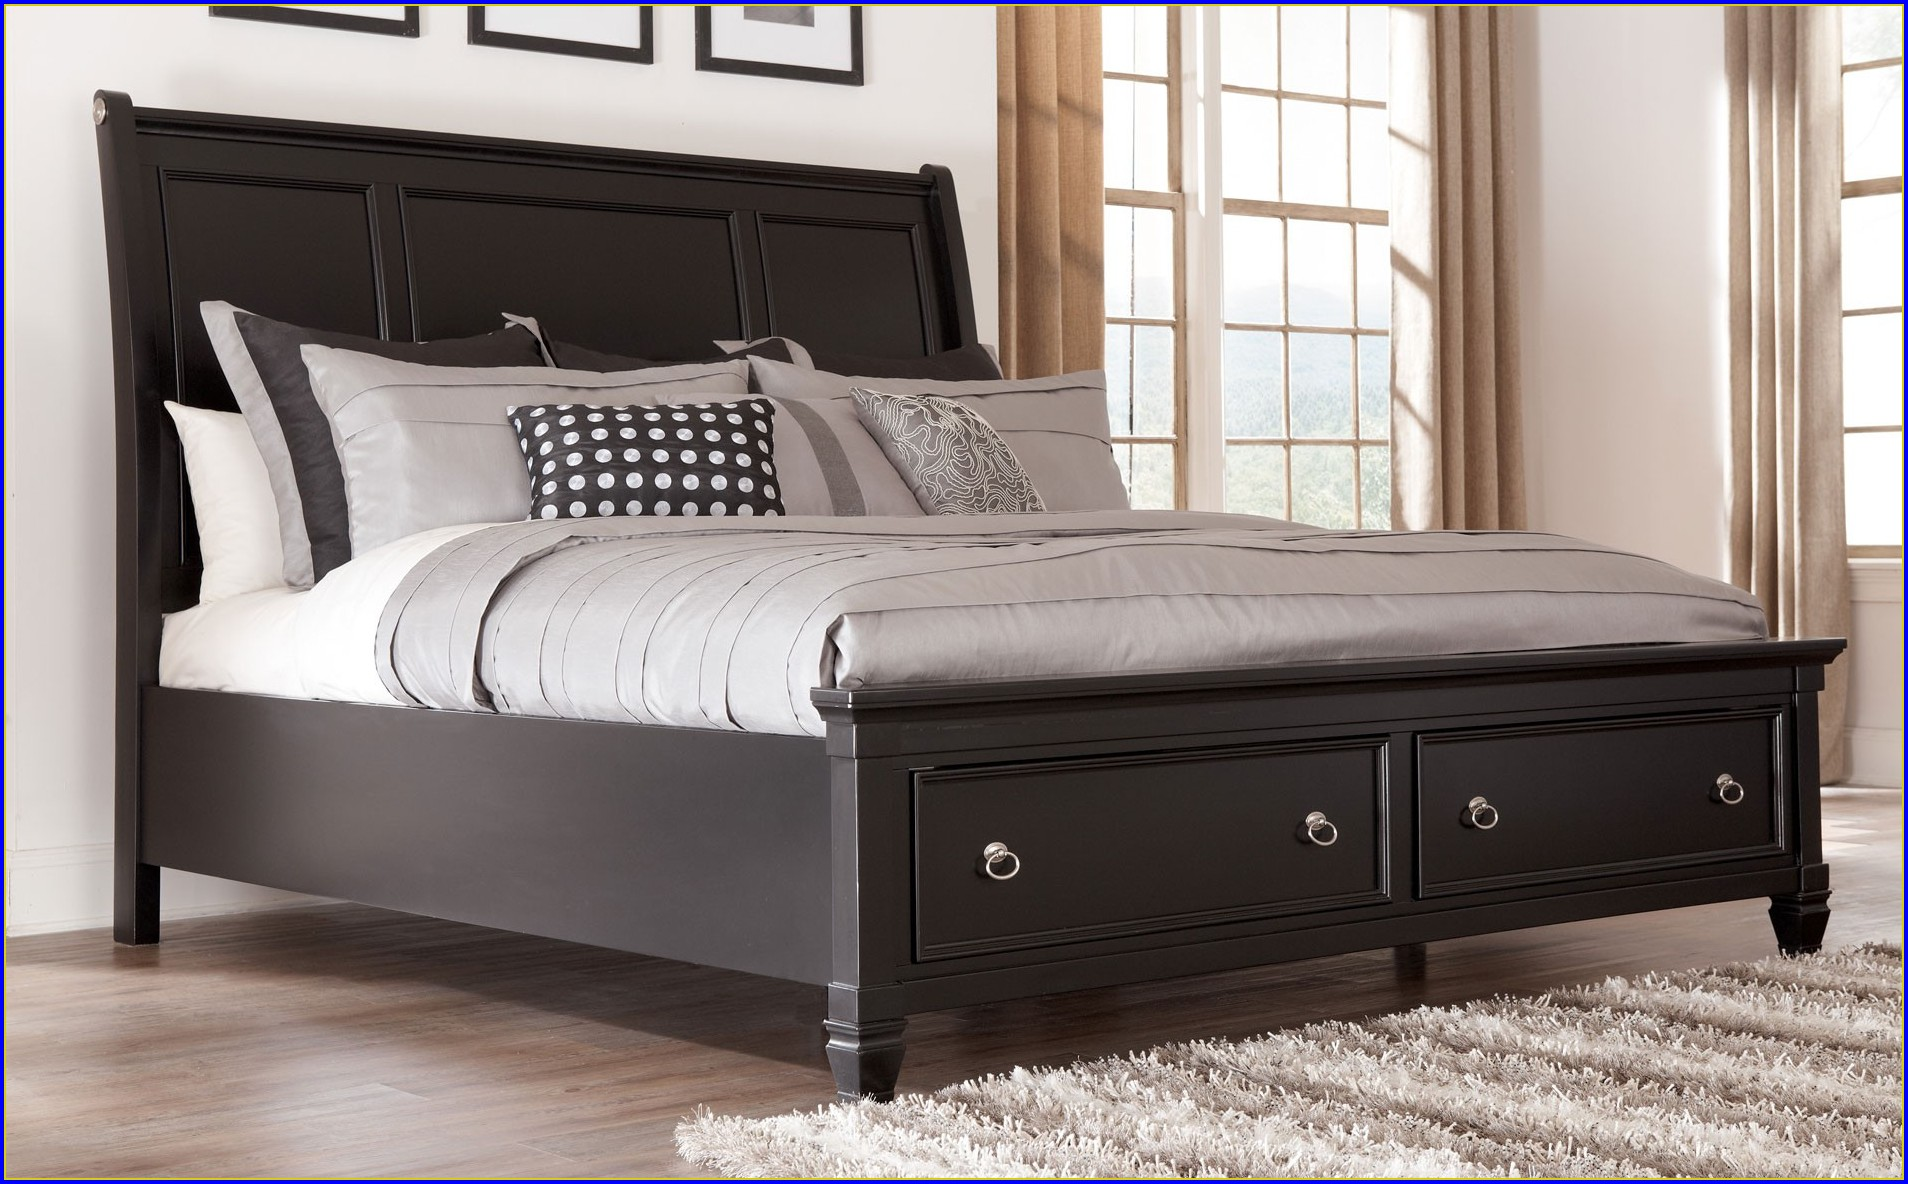 Queen Sleigh Bed Dimensions